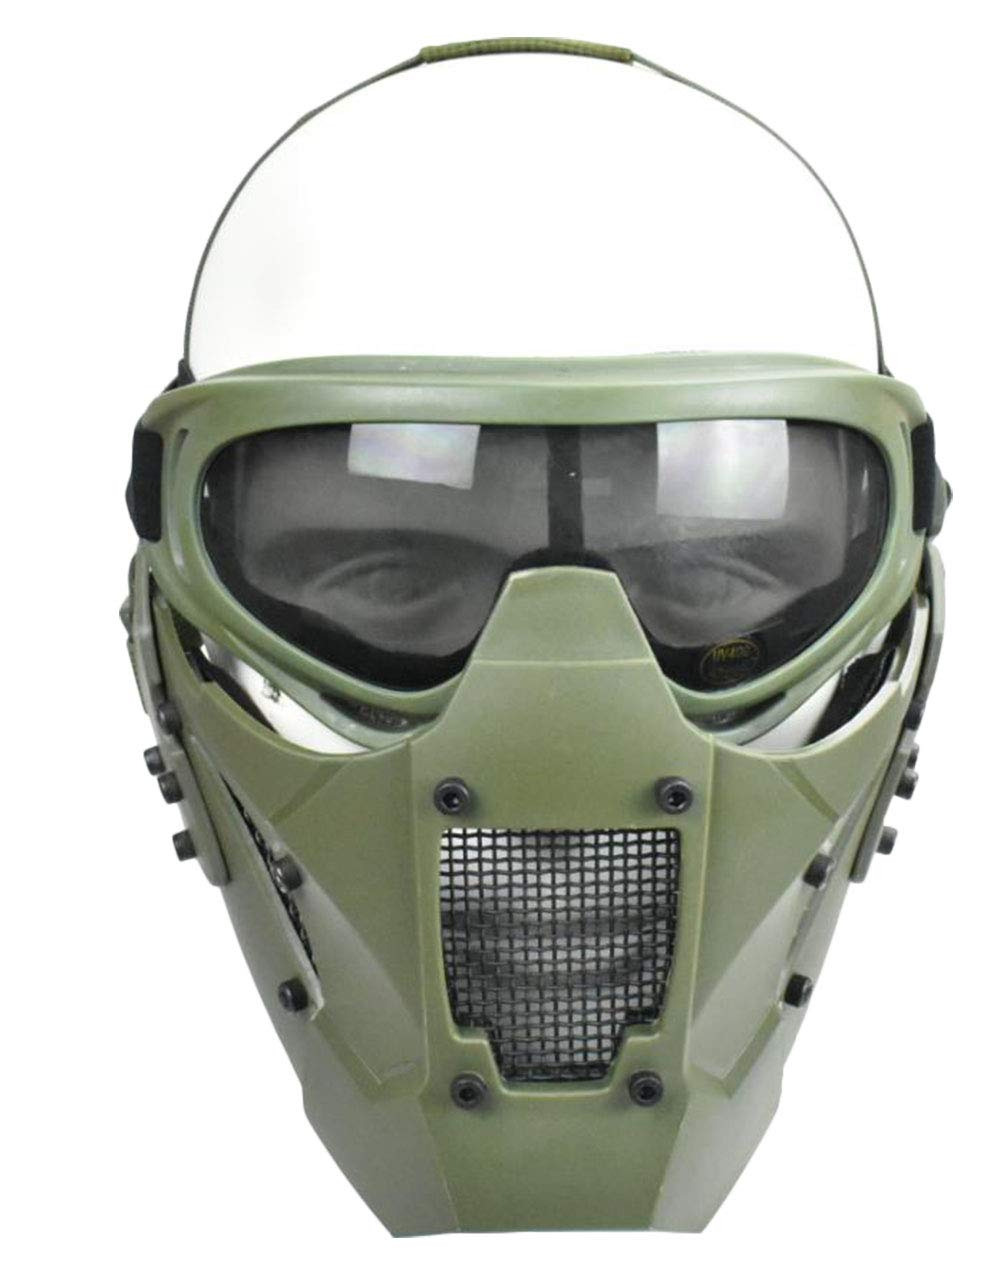 Jadedragon Tactical Airsoft Lower Face Mask Half Face Steel Mesh Protective Mask and Goggles Set (Green) by Jadedragon